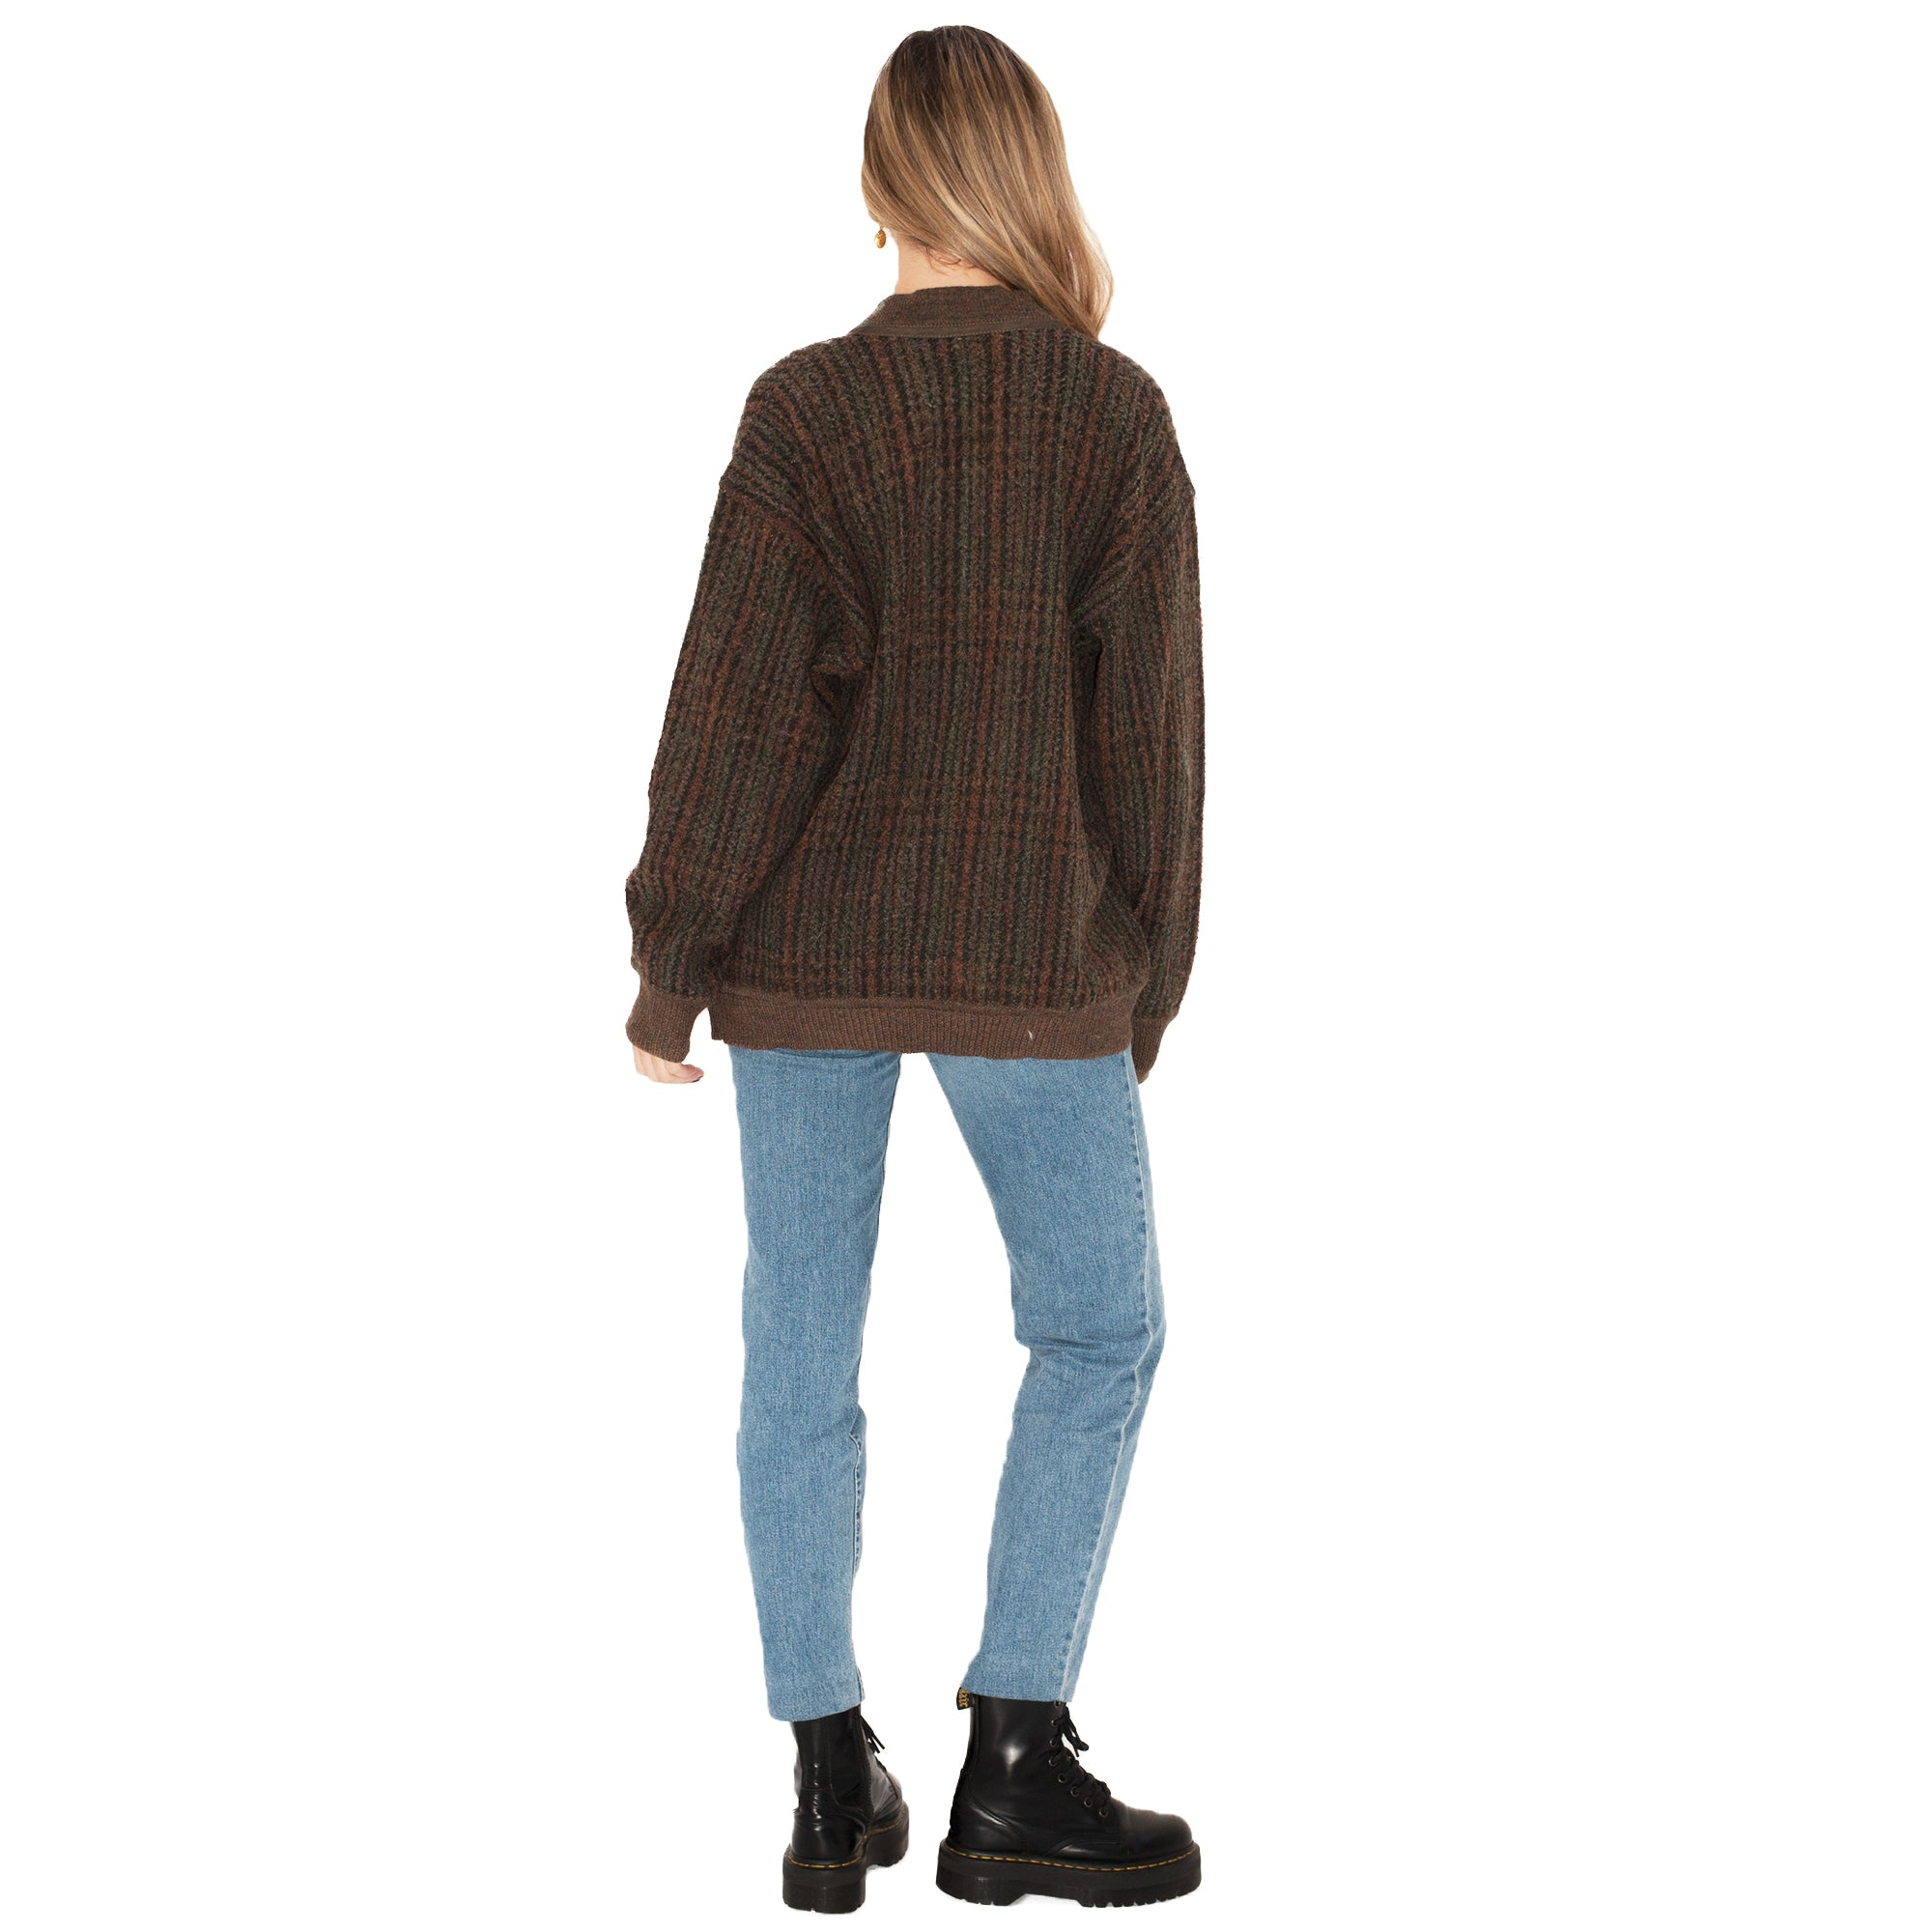 Yves Saint Laurent Cardigan (Brown) UK 8-12